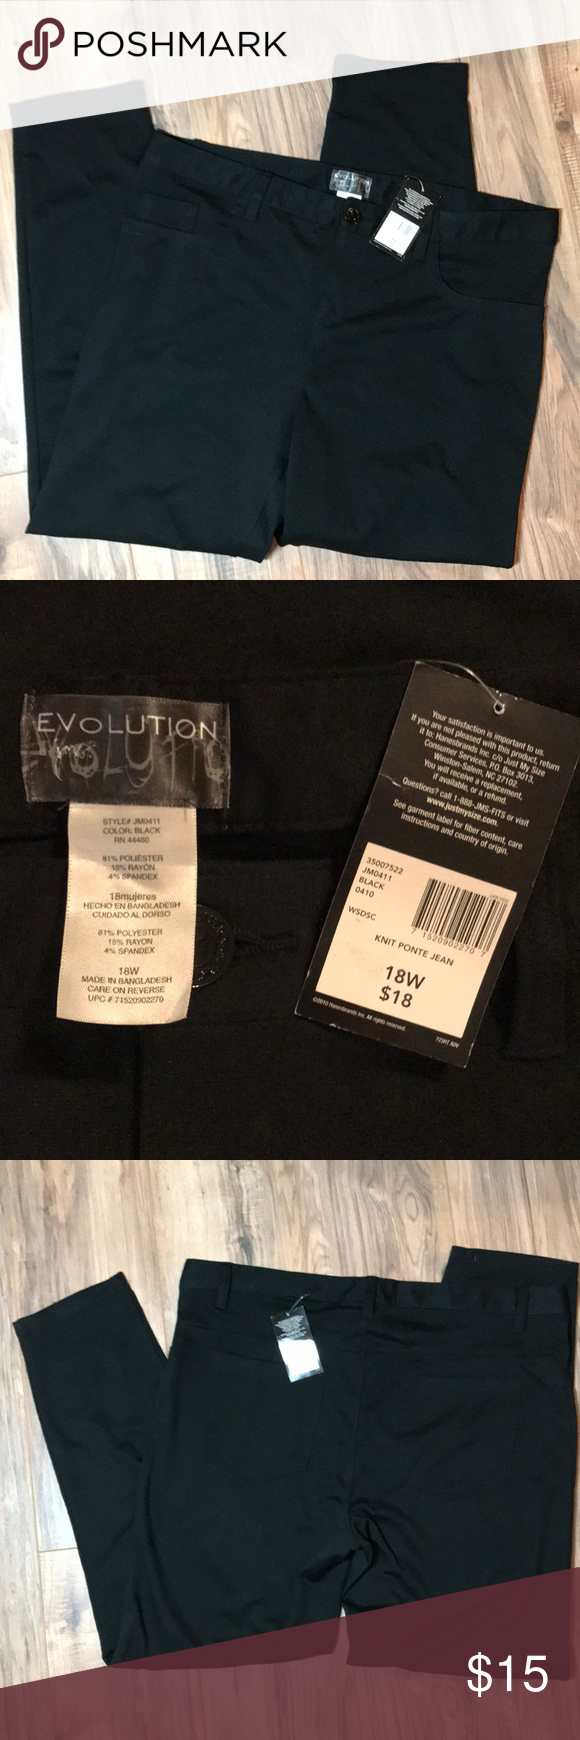 37d3275900e Just My Size Knit Ponte Jeans. Size 18W JMS Black knit jeans never worn  with Tag. Very comfy   stretchy. 5 pockets